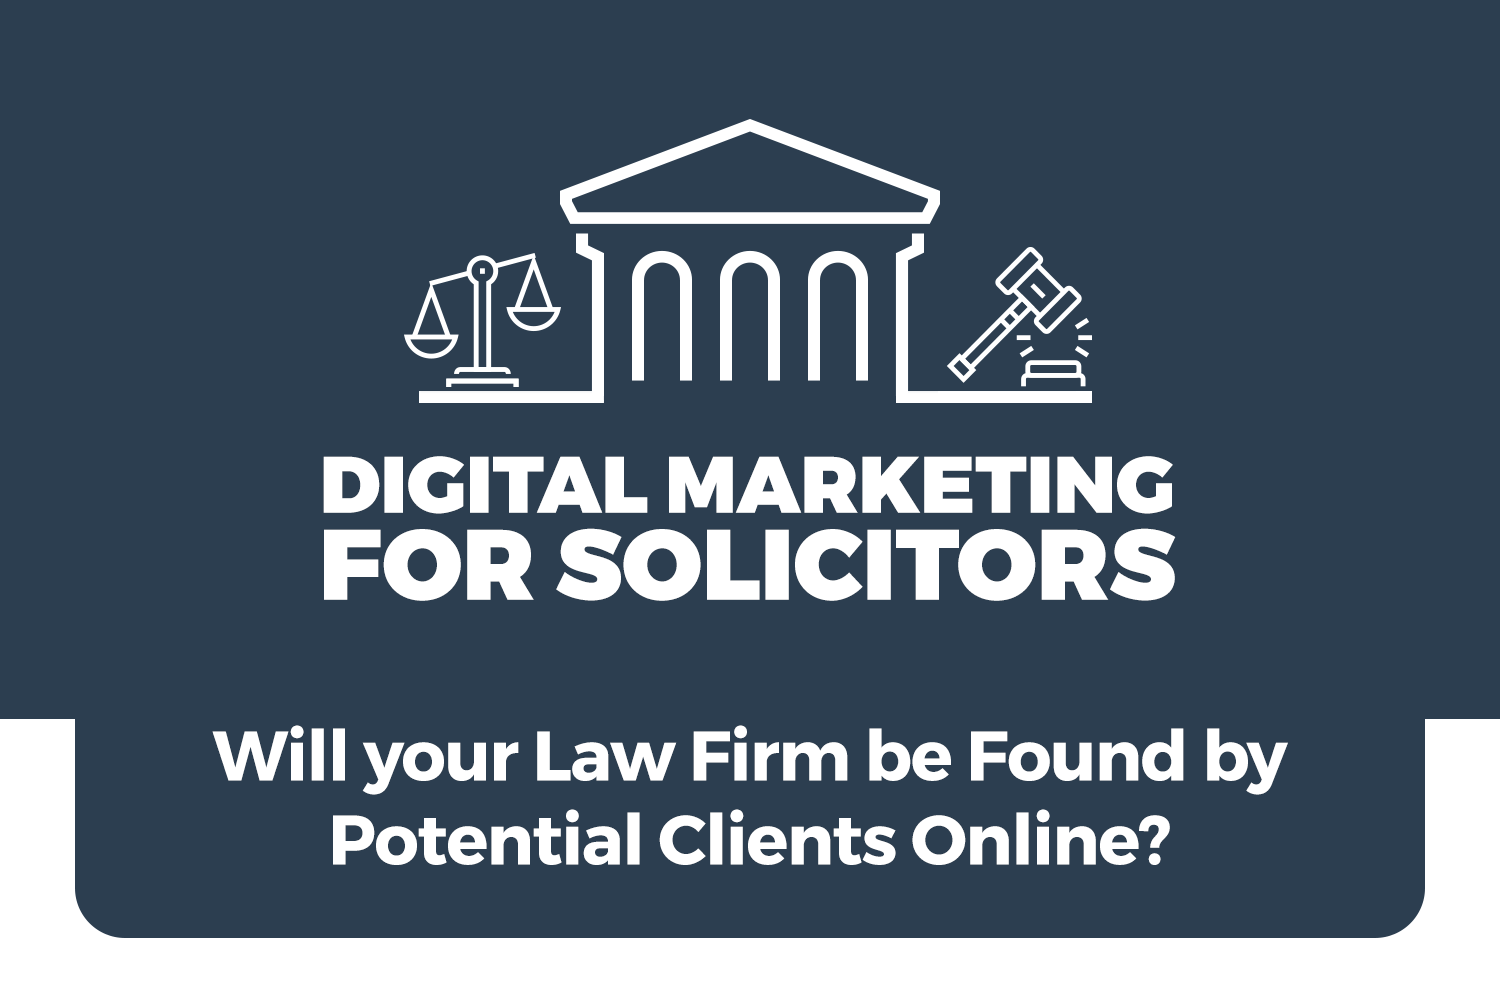 Marketing-to-Lawyers-2017-Infographic-Featured-Banner-Image.png